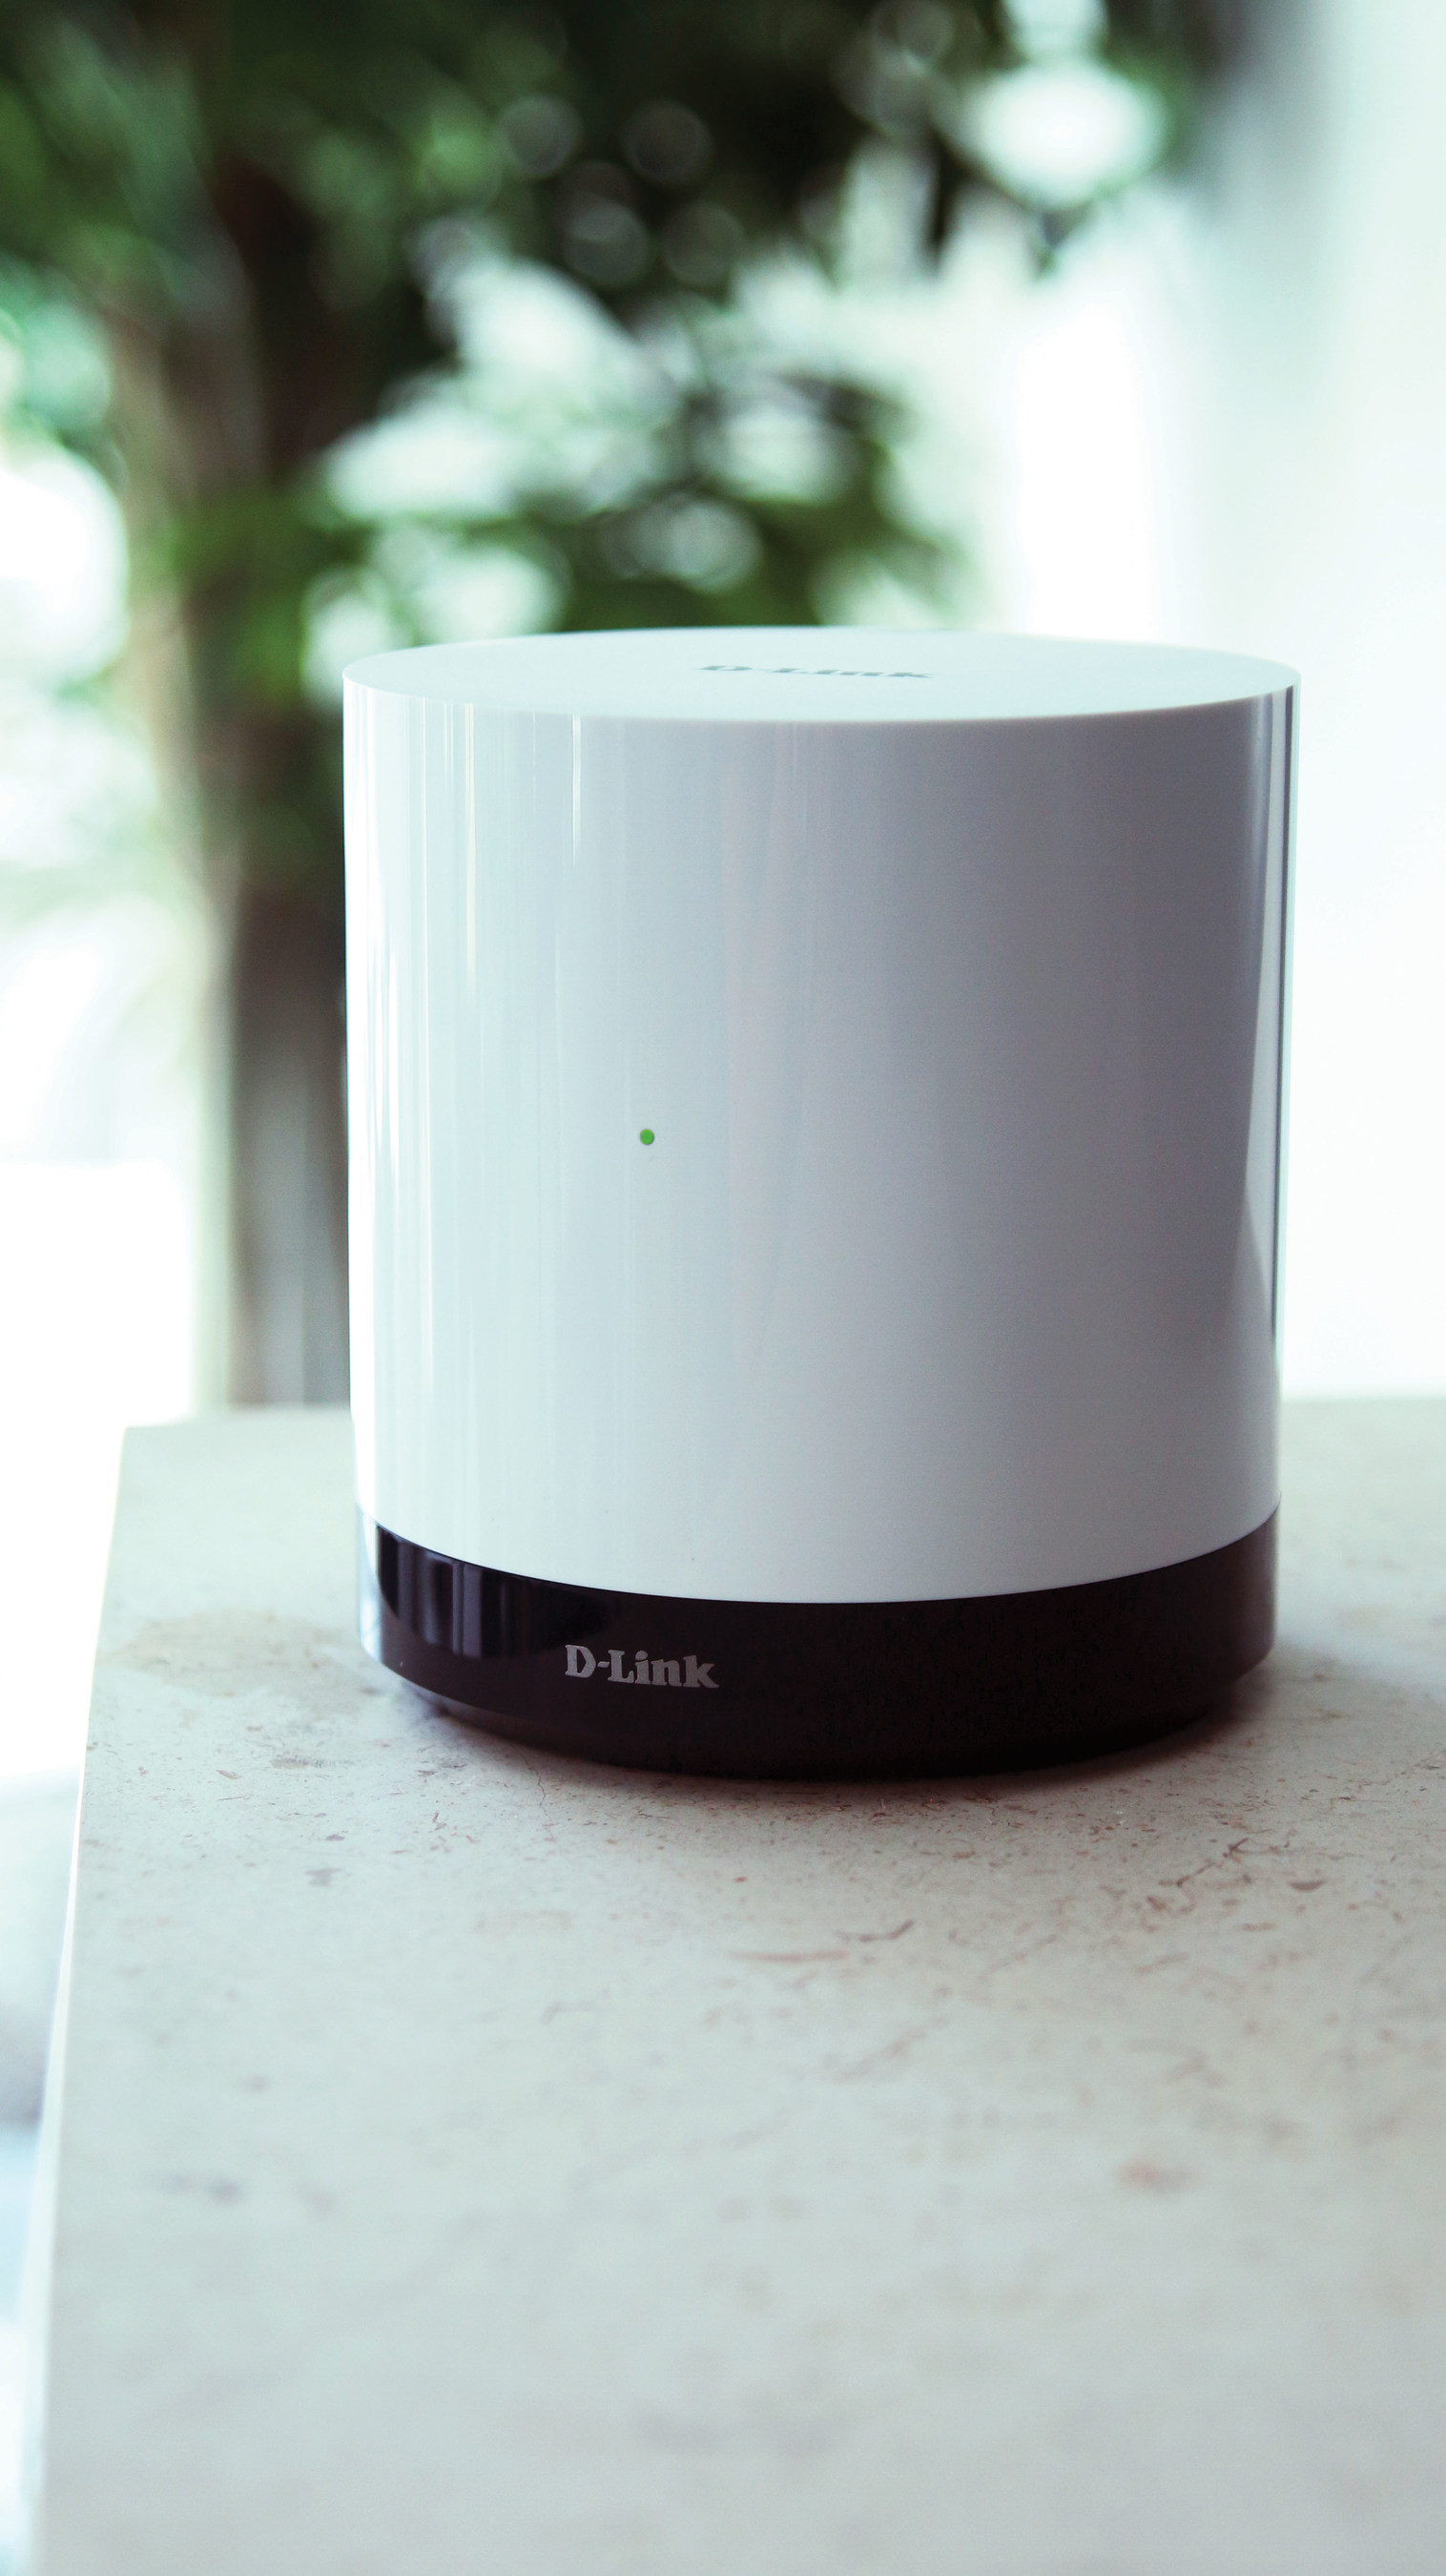 The Connected Home Hub (DCH-G020) plugs into an existing home network router to act as a centralized control for D-Link Connected Home devices